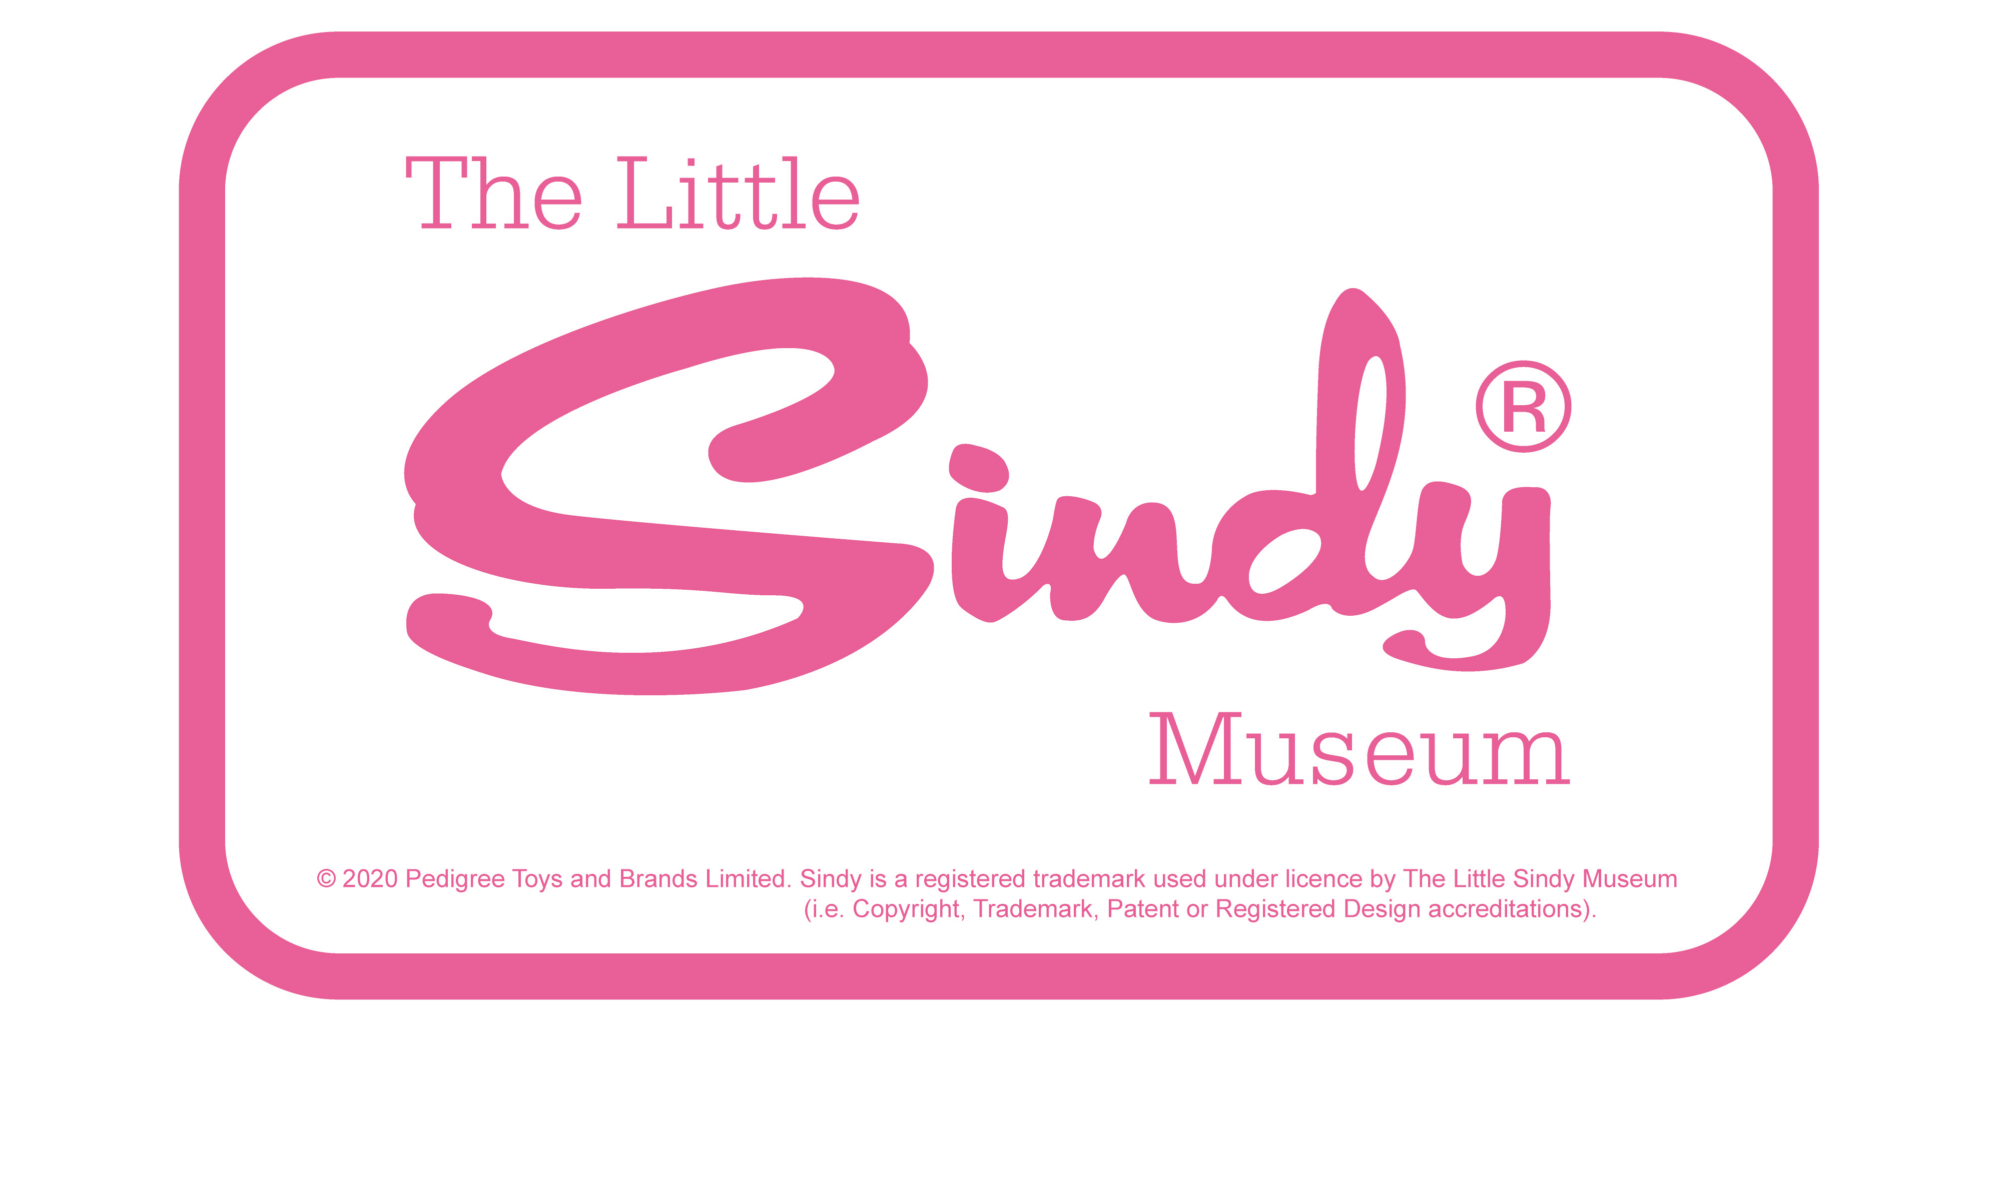 The Little Sindy Museum